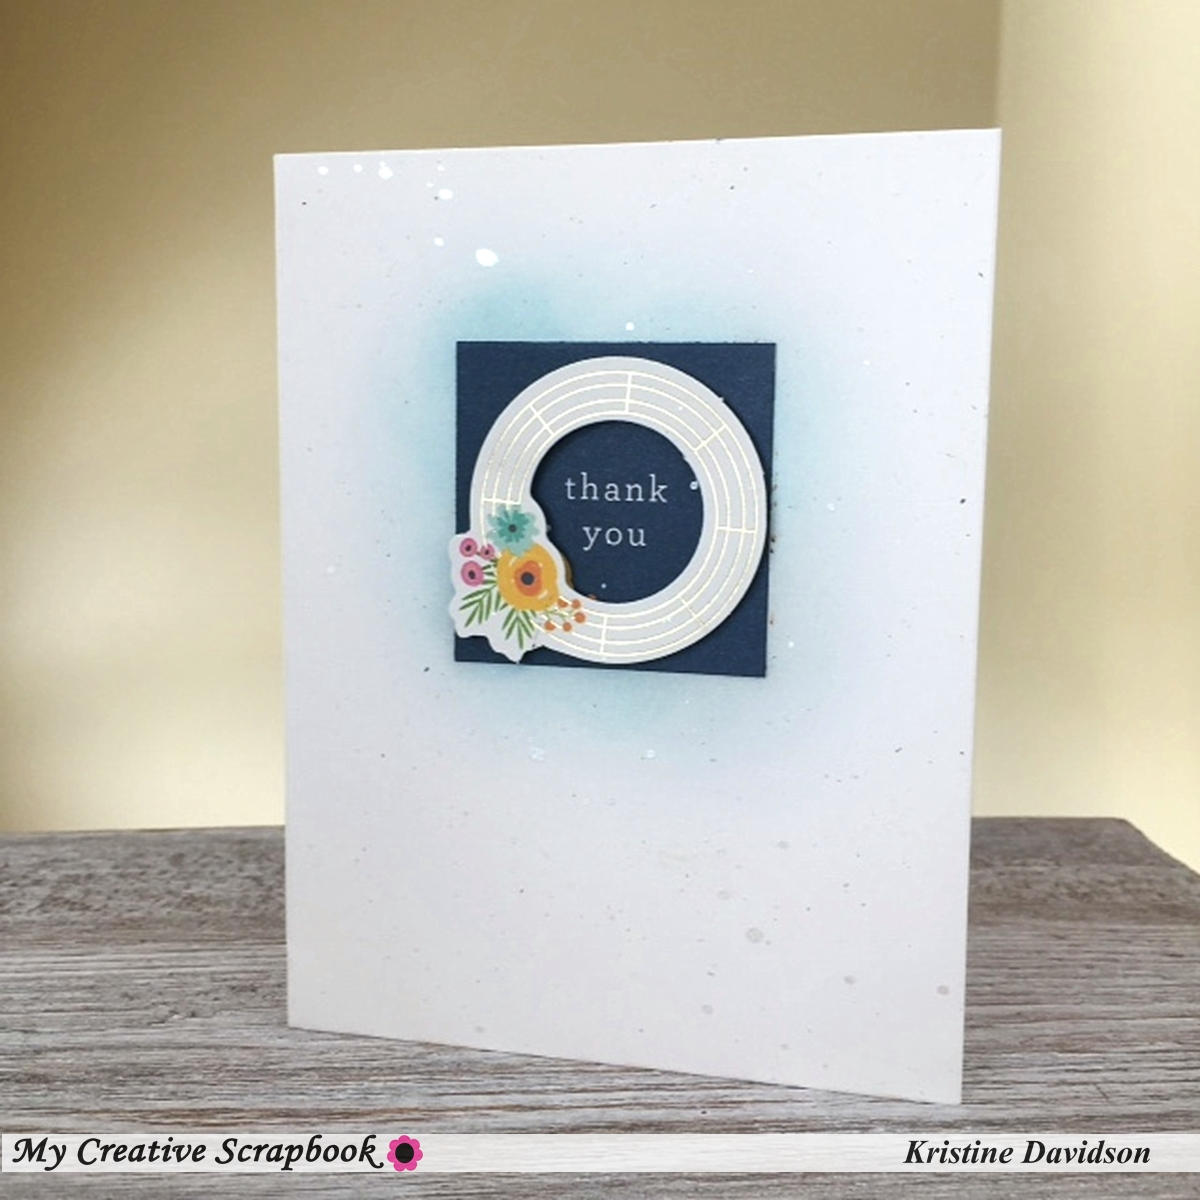 MCS-Kristine Davidson - Main Kit - Card3